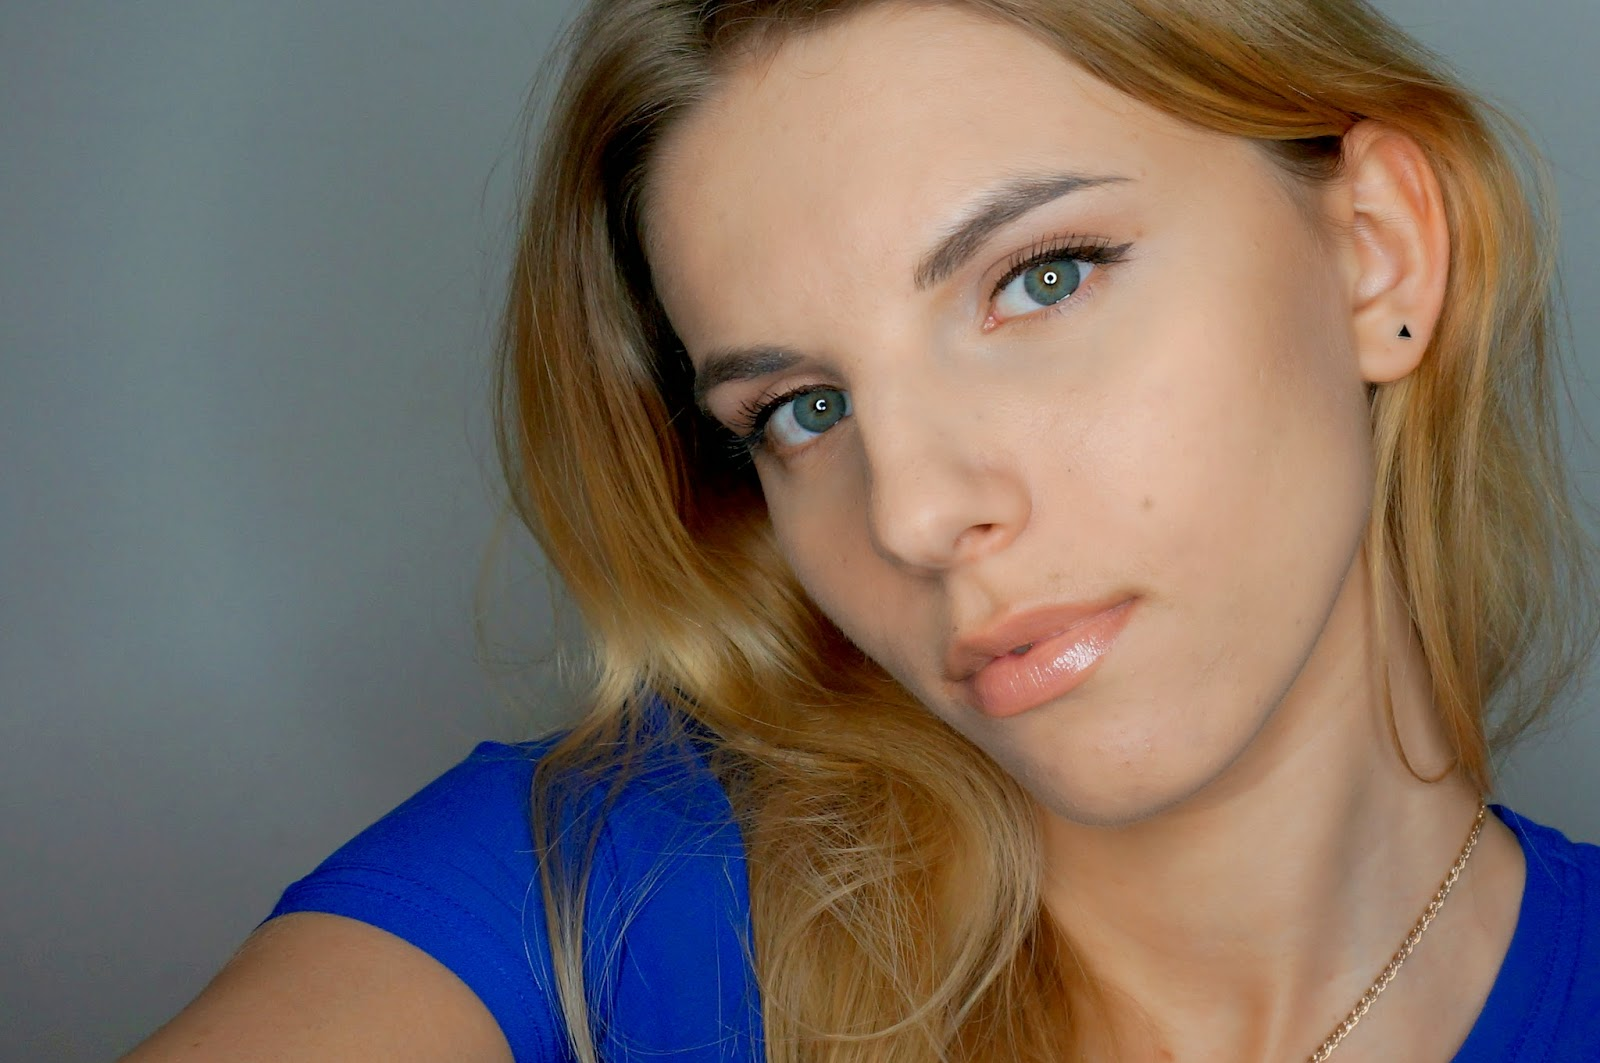 http://femalepleasurelola.blogspot.com/2014/06/make-up-no-make-up-moj-dzienny-makijaz.html